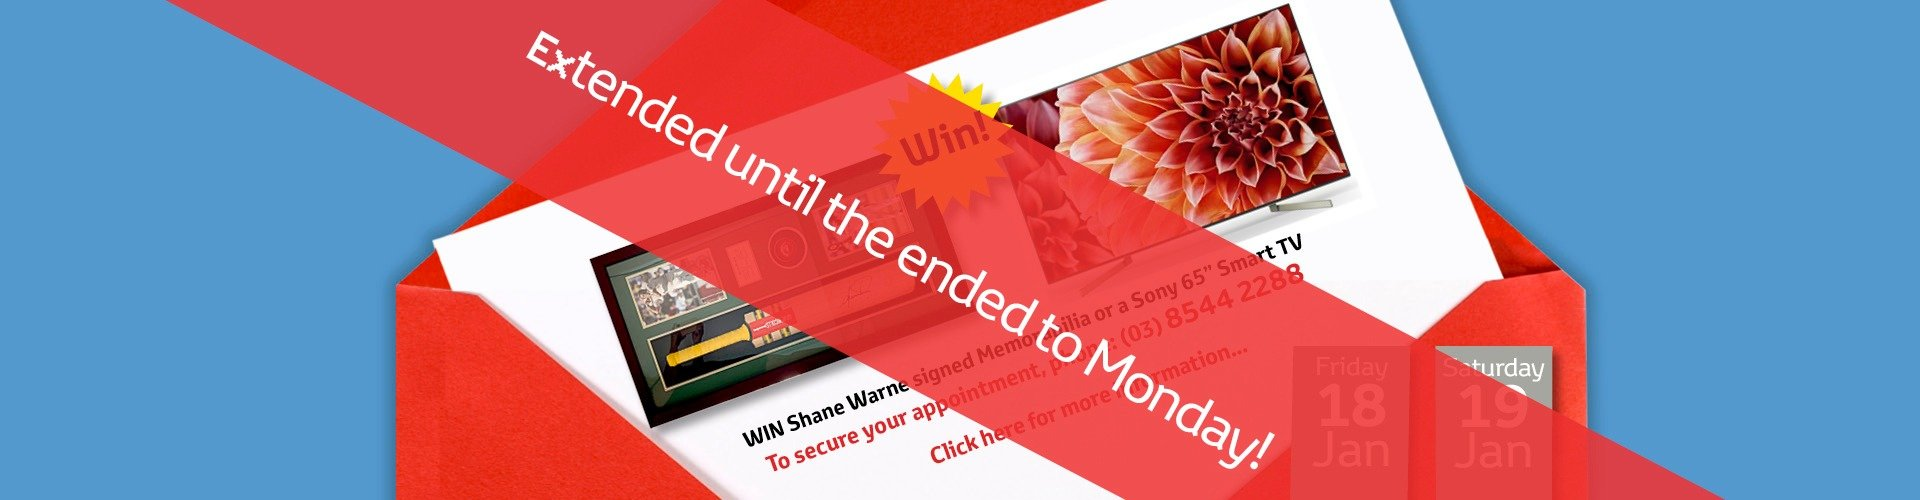 Waverley Toyota's RED ENVELOPE SALE EVENT